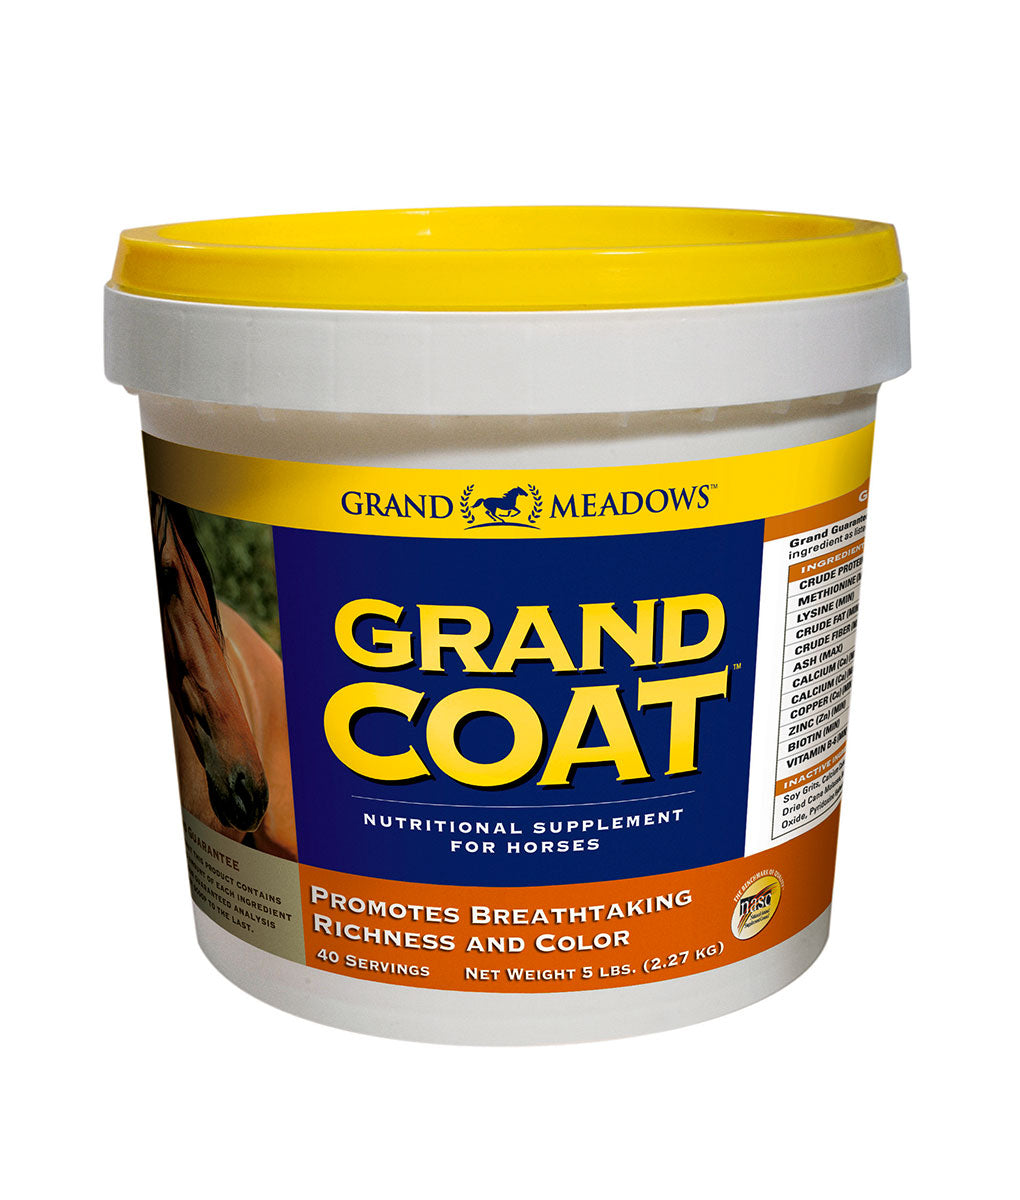 Grand Meadows - Grand Coat